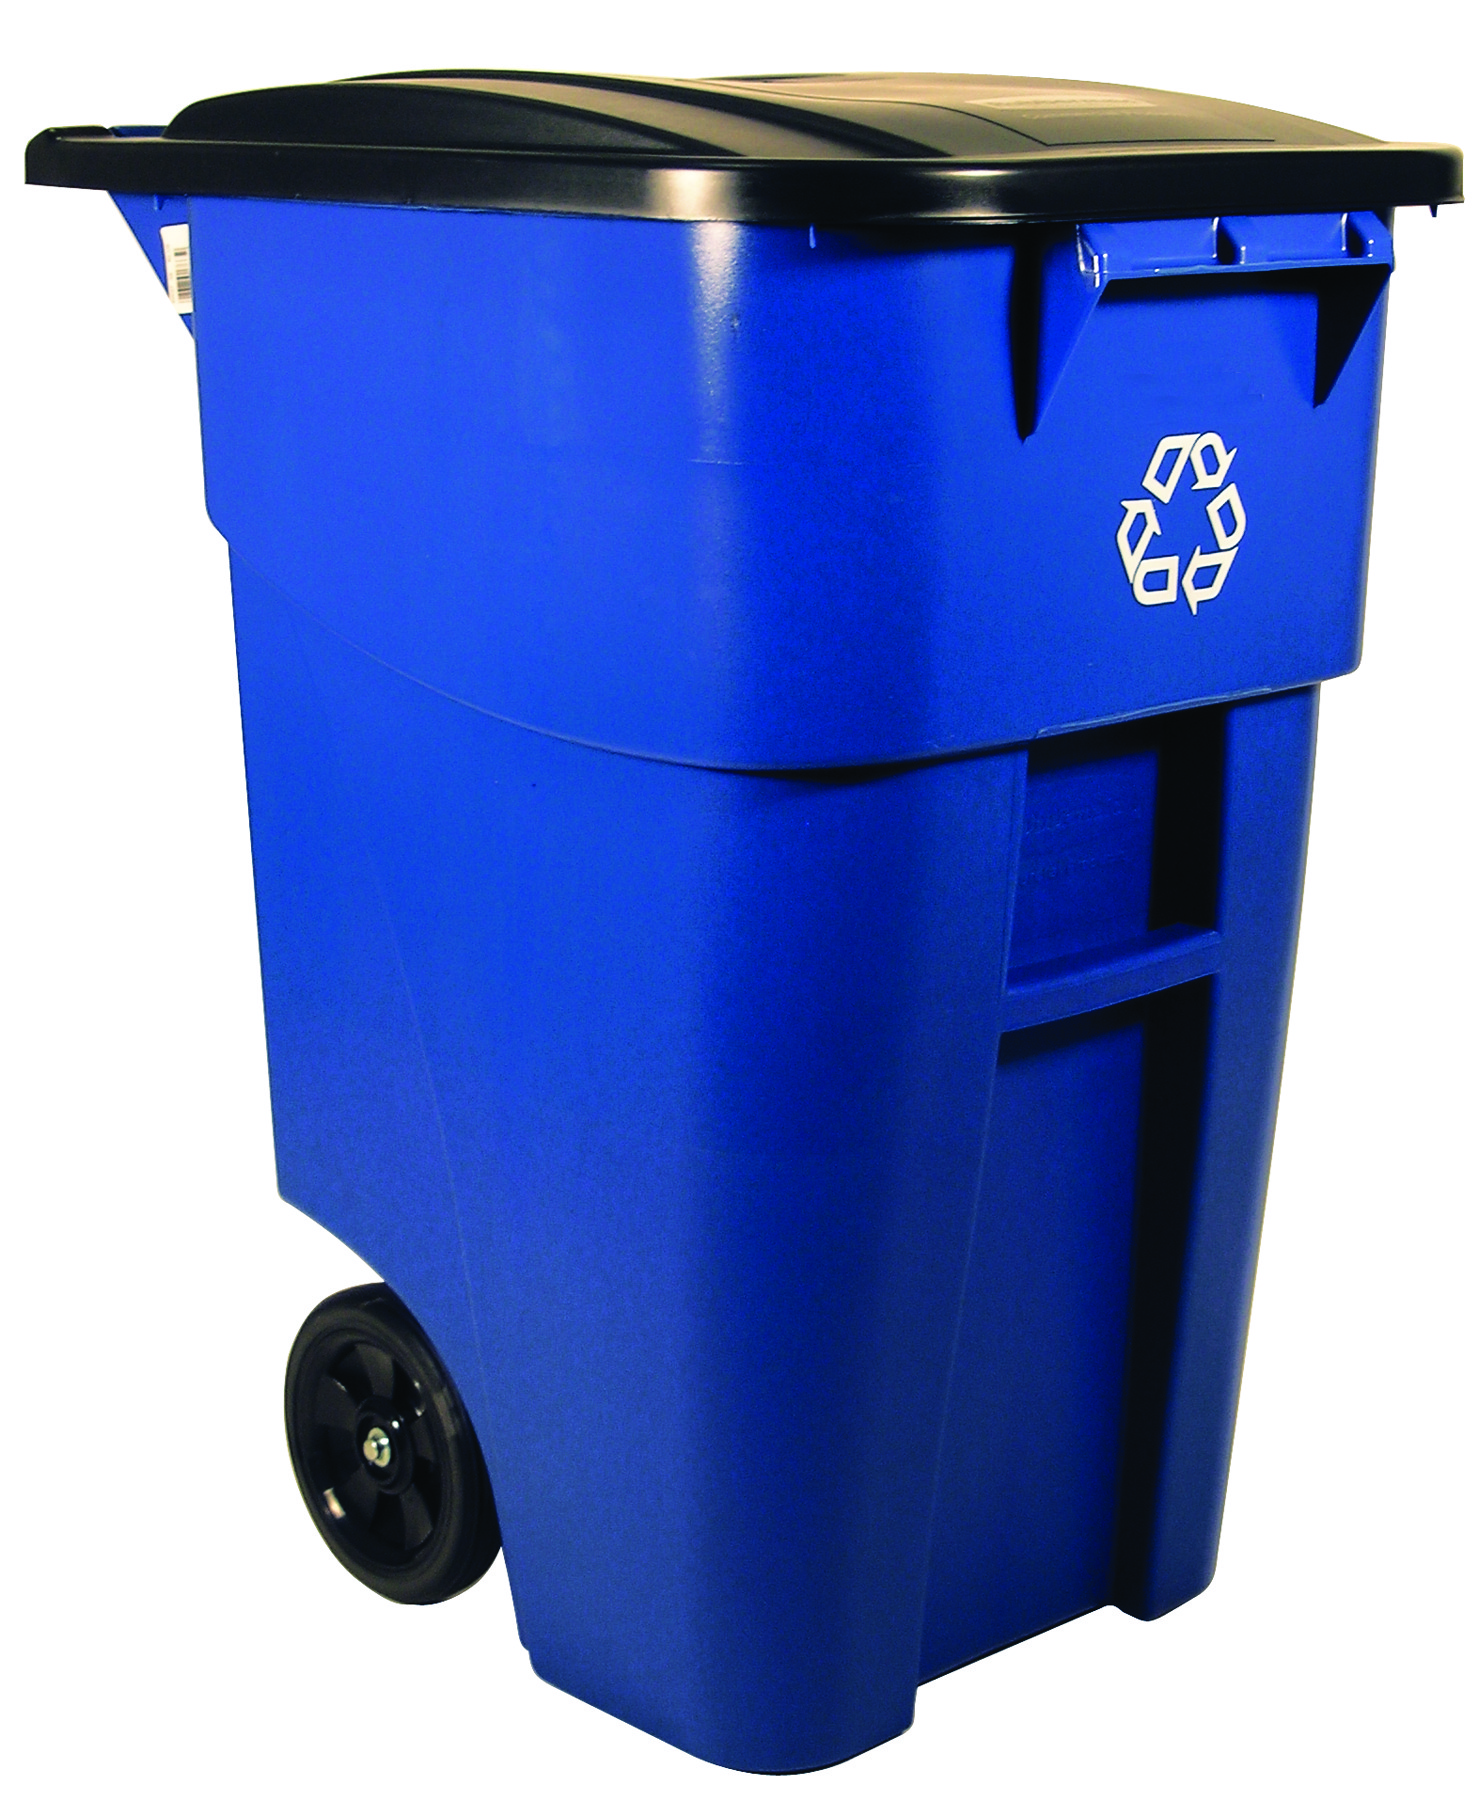 Round Drop Top Waste Receptacle With Tray Shelf also Witt Outdoor Trash Receptacle 36 Gal Brown Steel Flat Top Decorative 22800 additionally 1000116653 also 100208798 together with Kaleidoscope Three Stream Recycling Container p 476. on commercial outdoor trash receptacles